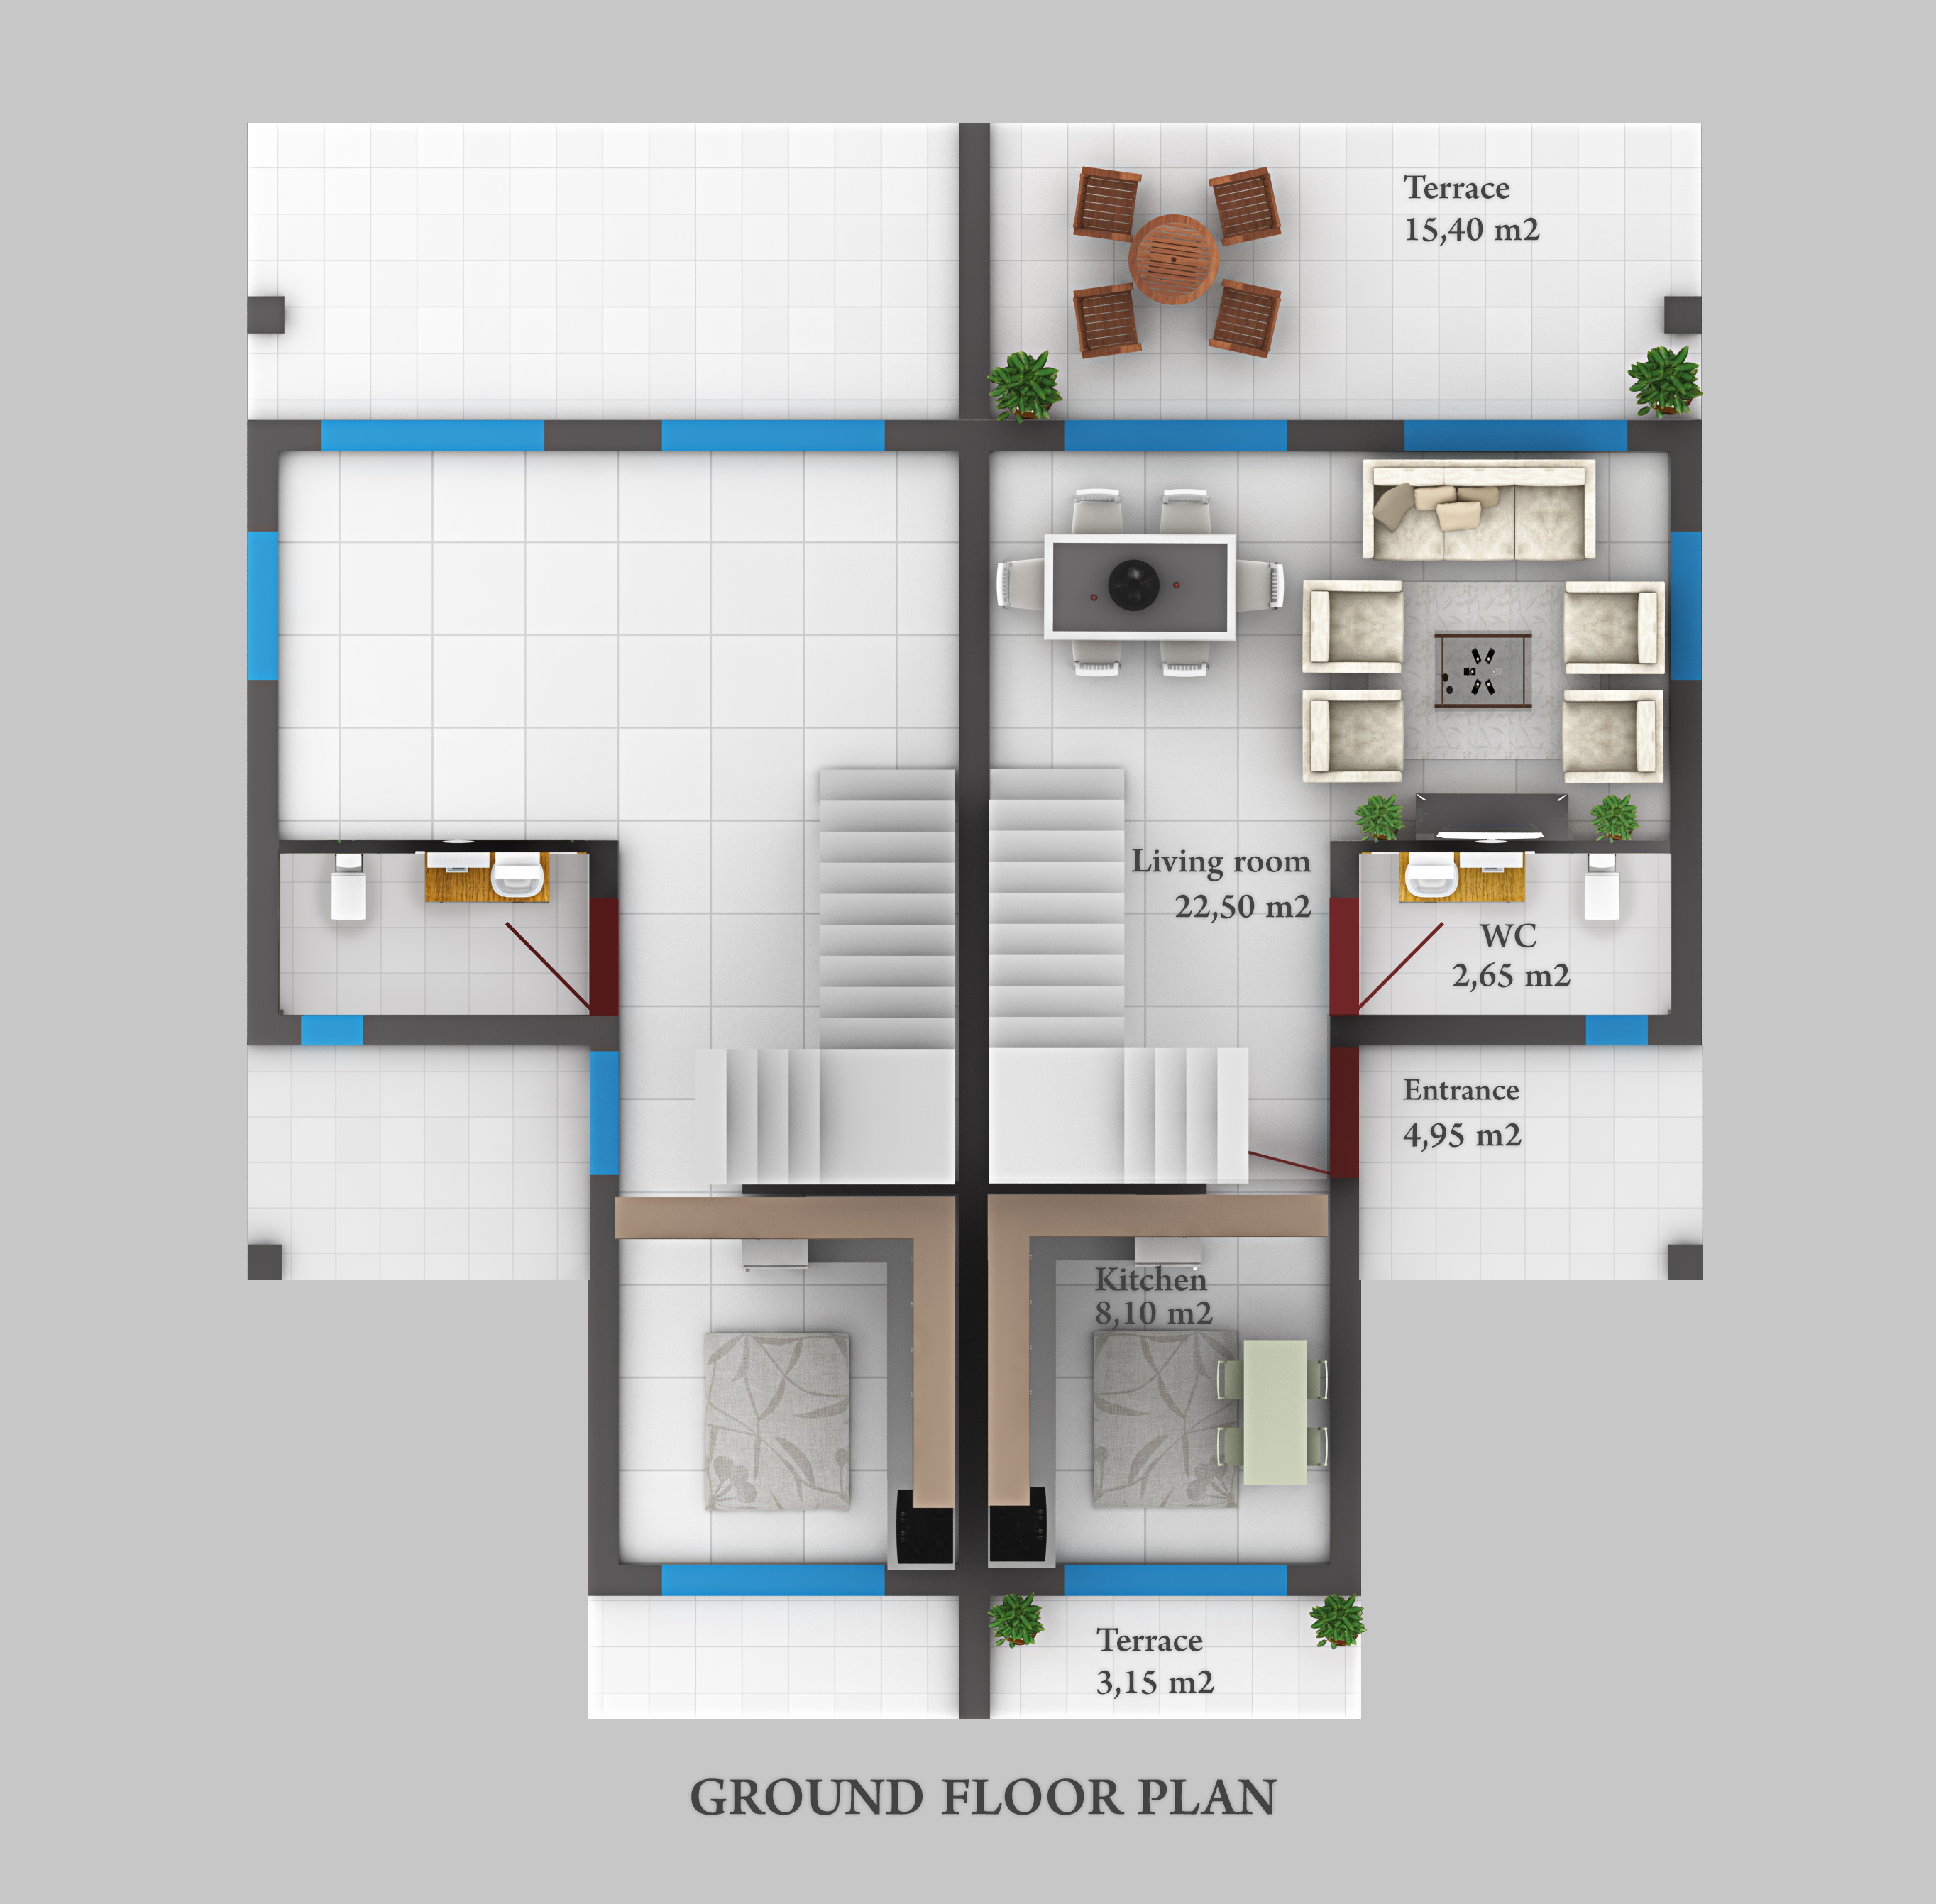 GROUNDFLOOR PLAN